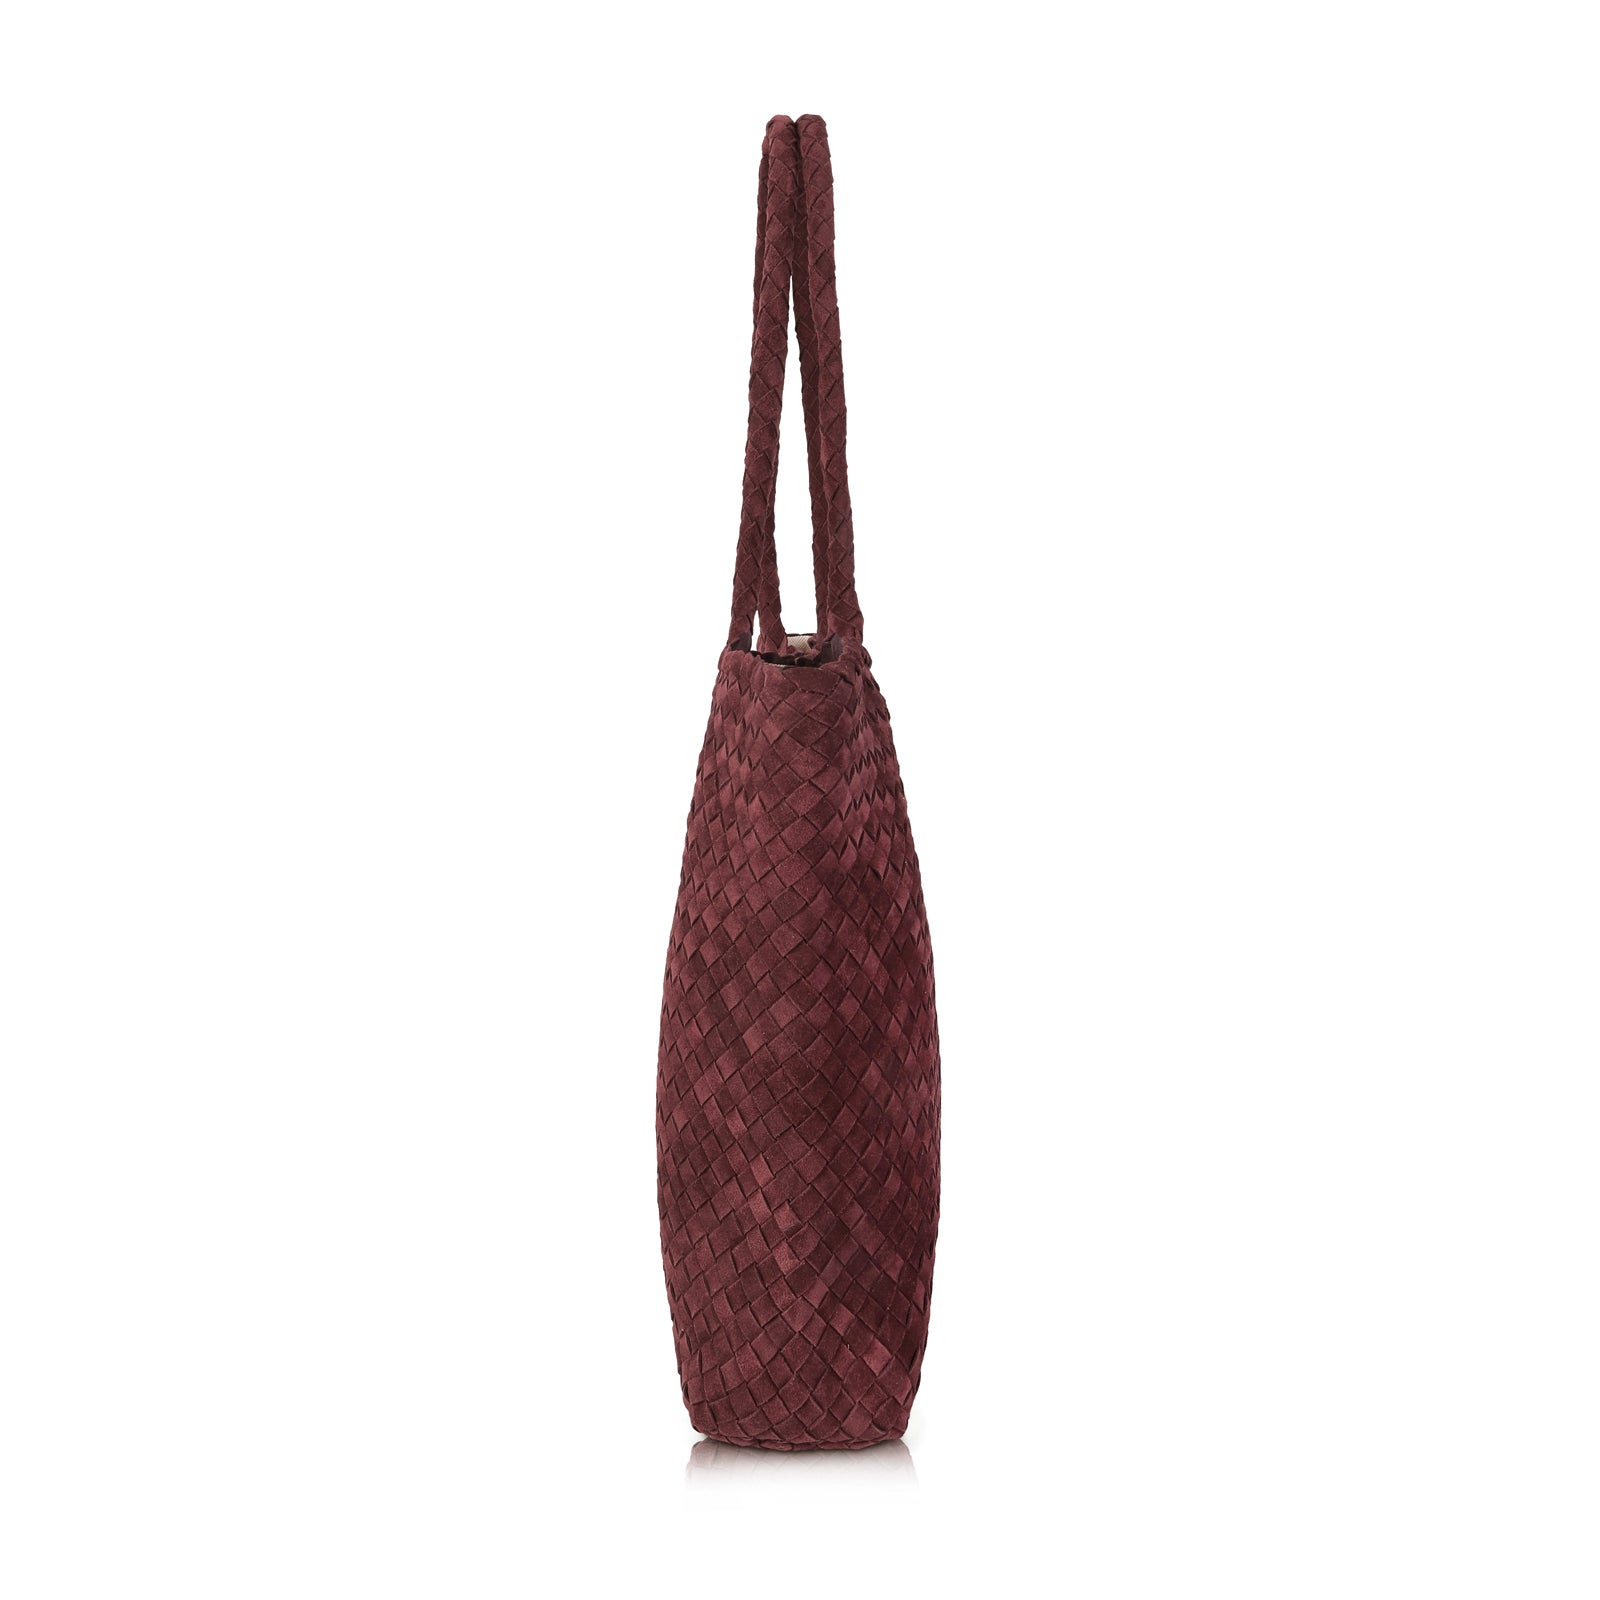 The Classic Elena Woven Handbag - Burgundy Suede